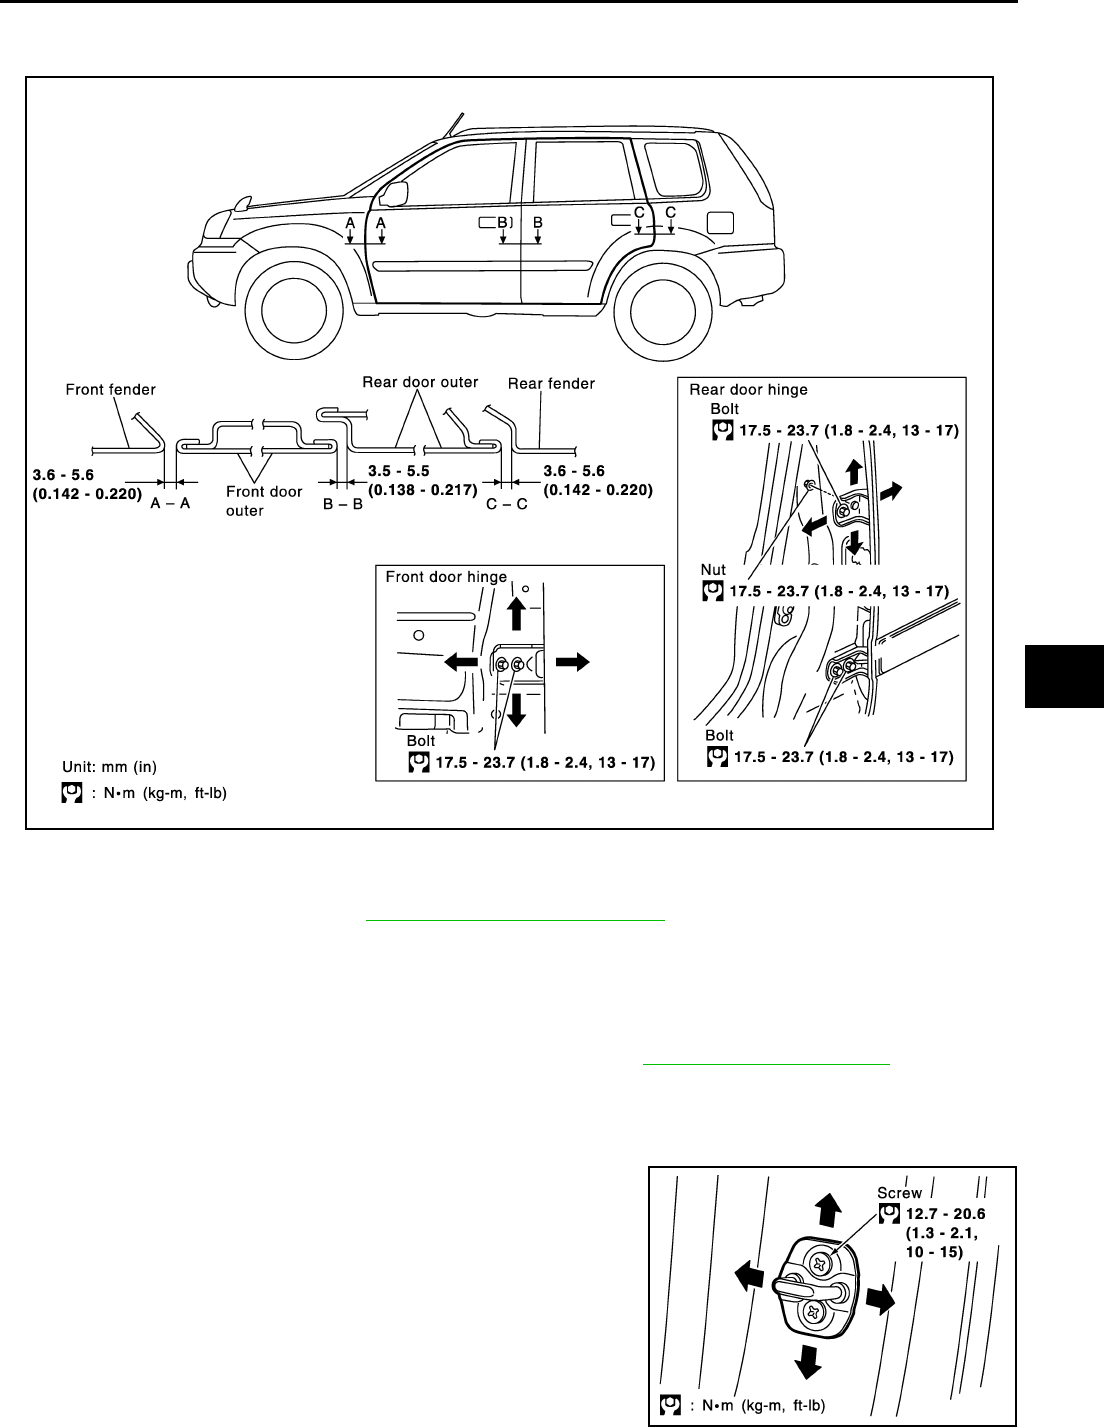 bg13 nissan xtrail t30 workshop manual 2005 (7) pdf nissan x trail t30 wiring diagram at gsmx.co